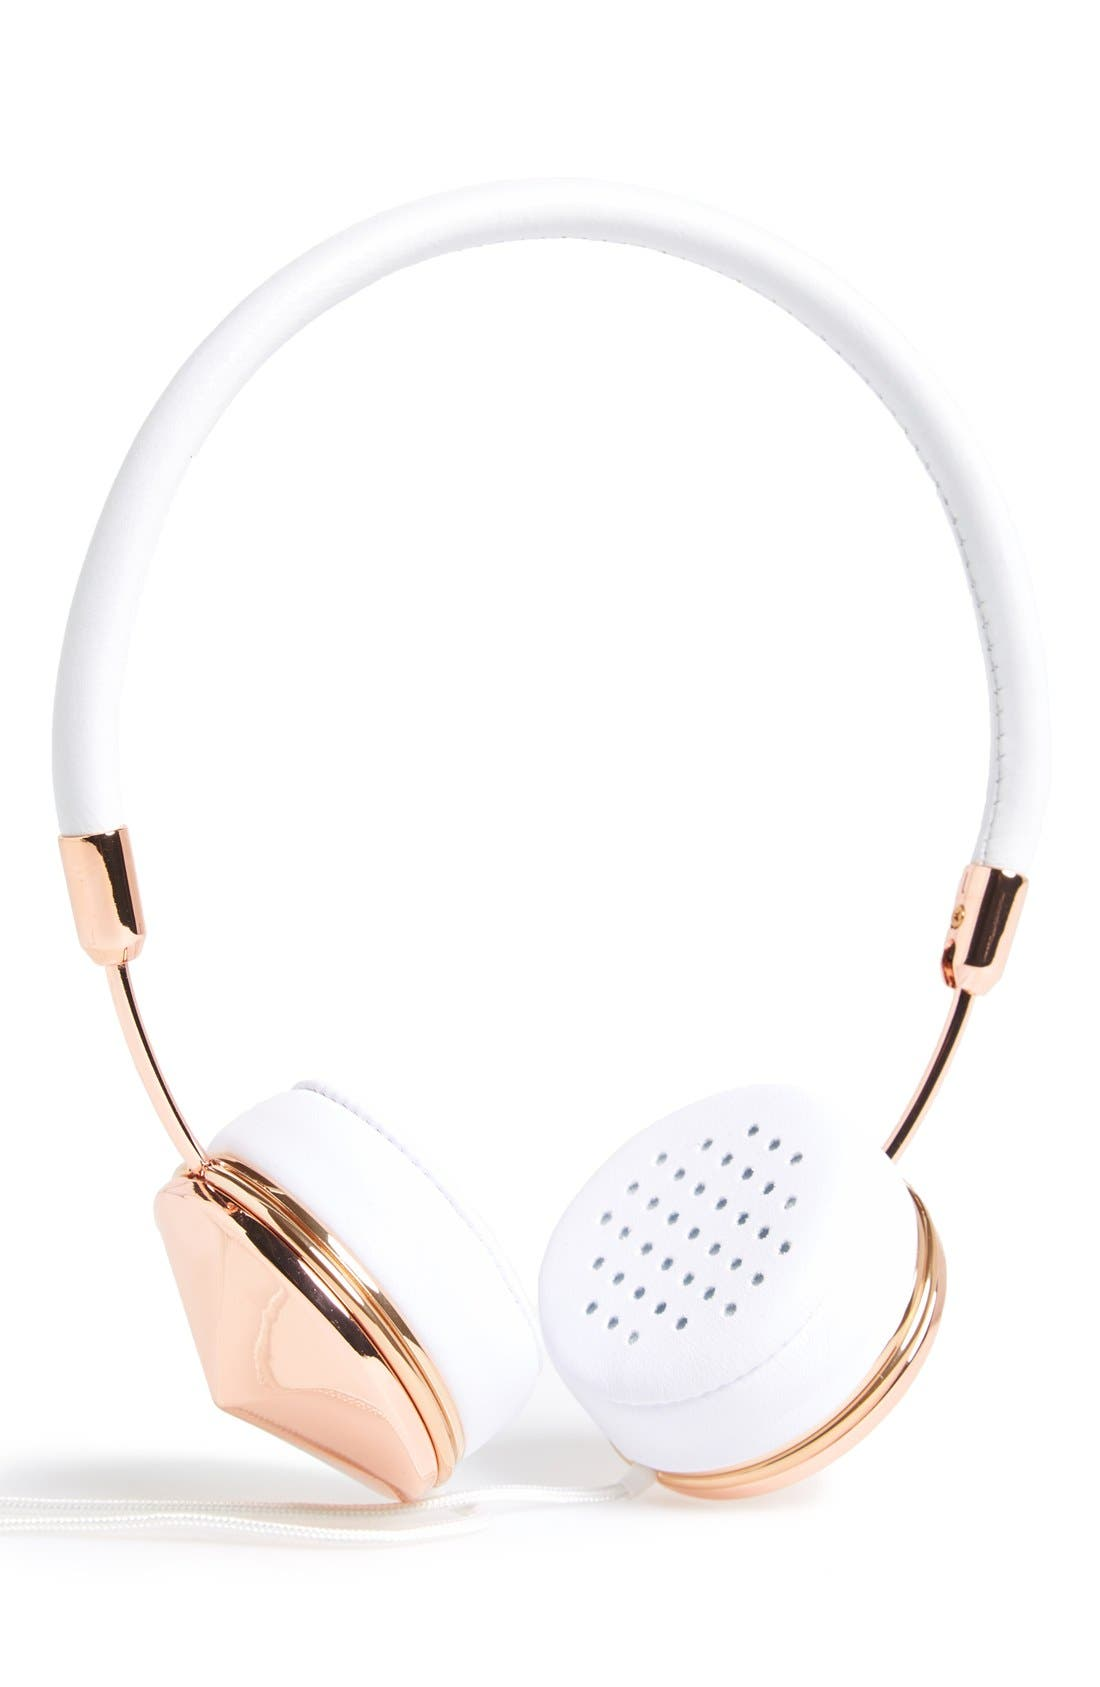 with Benefits 'Layla' Headphones,                         Main,                         color, Rose/ White